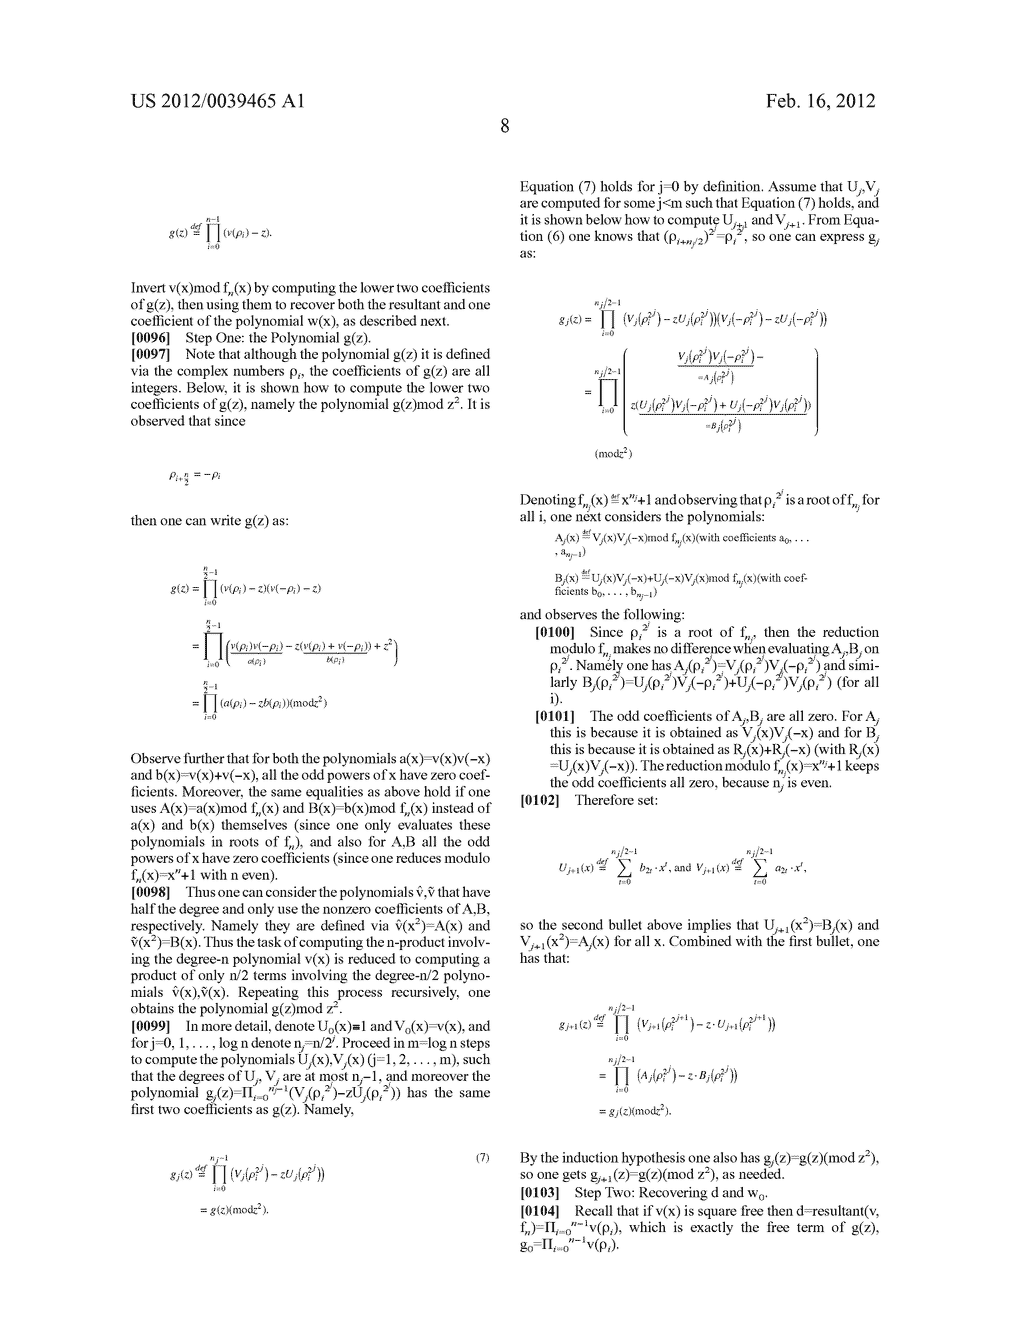 Fast Computation Of A Single Coefficient In An Inverse Polynomial - diagram, schematic, and image 17